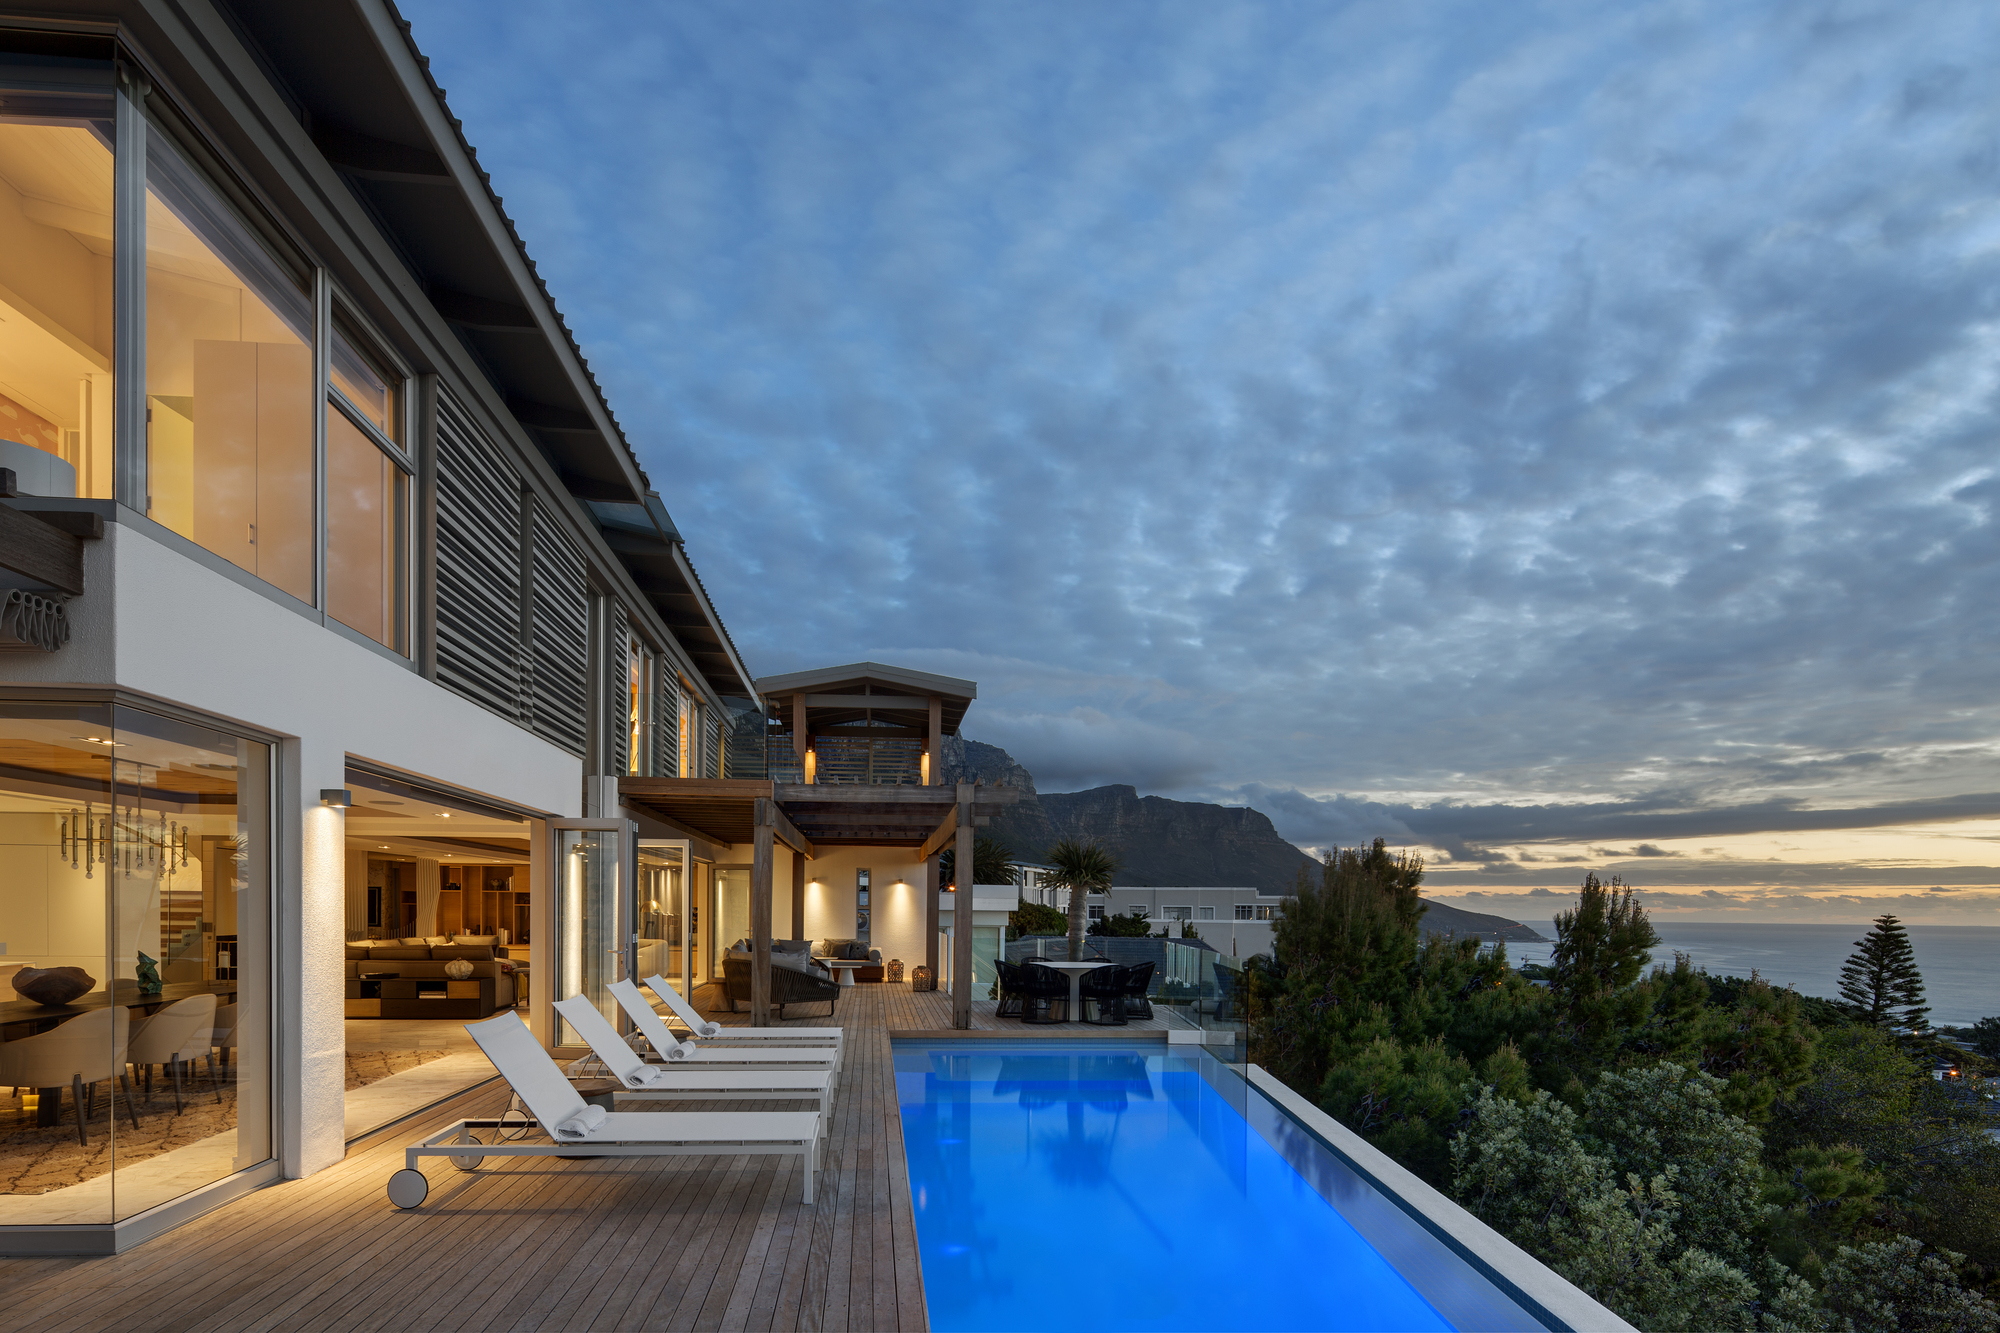 Cape Villa House / ARRCC